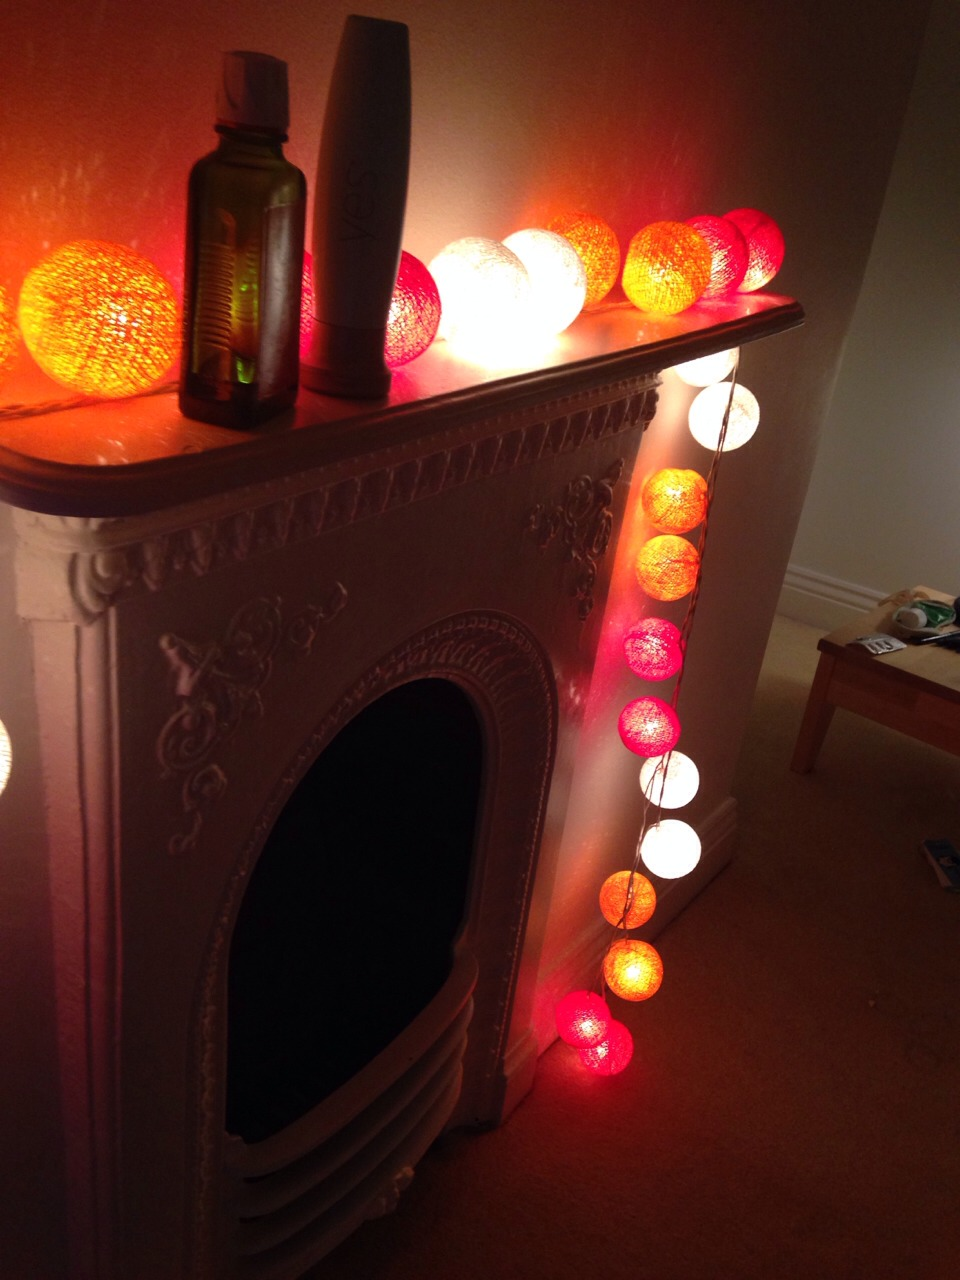 Lanterns are also, like the fairy lights, a nice way to tumblr a room